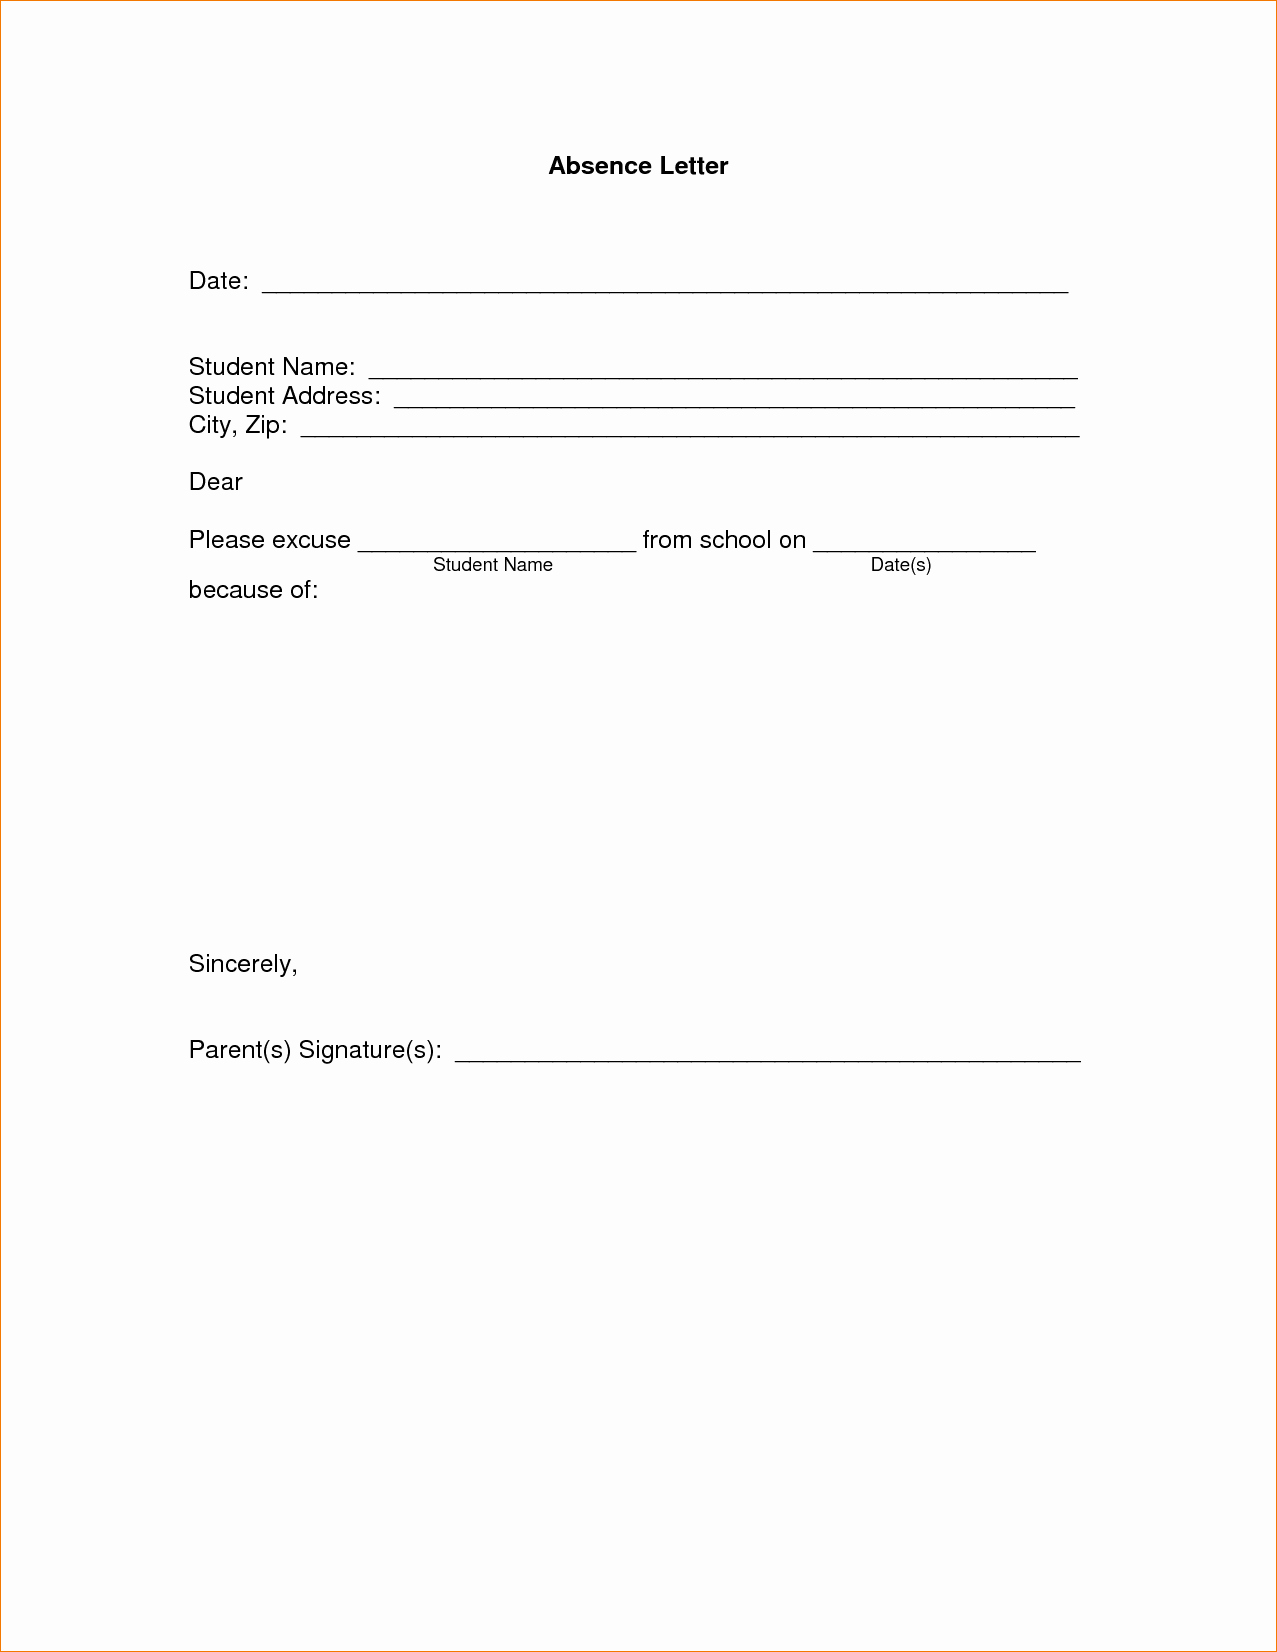 Absence Excuse Letters for School Unique 11 Absence Excuse Letteragenda Template Sample